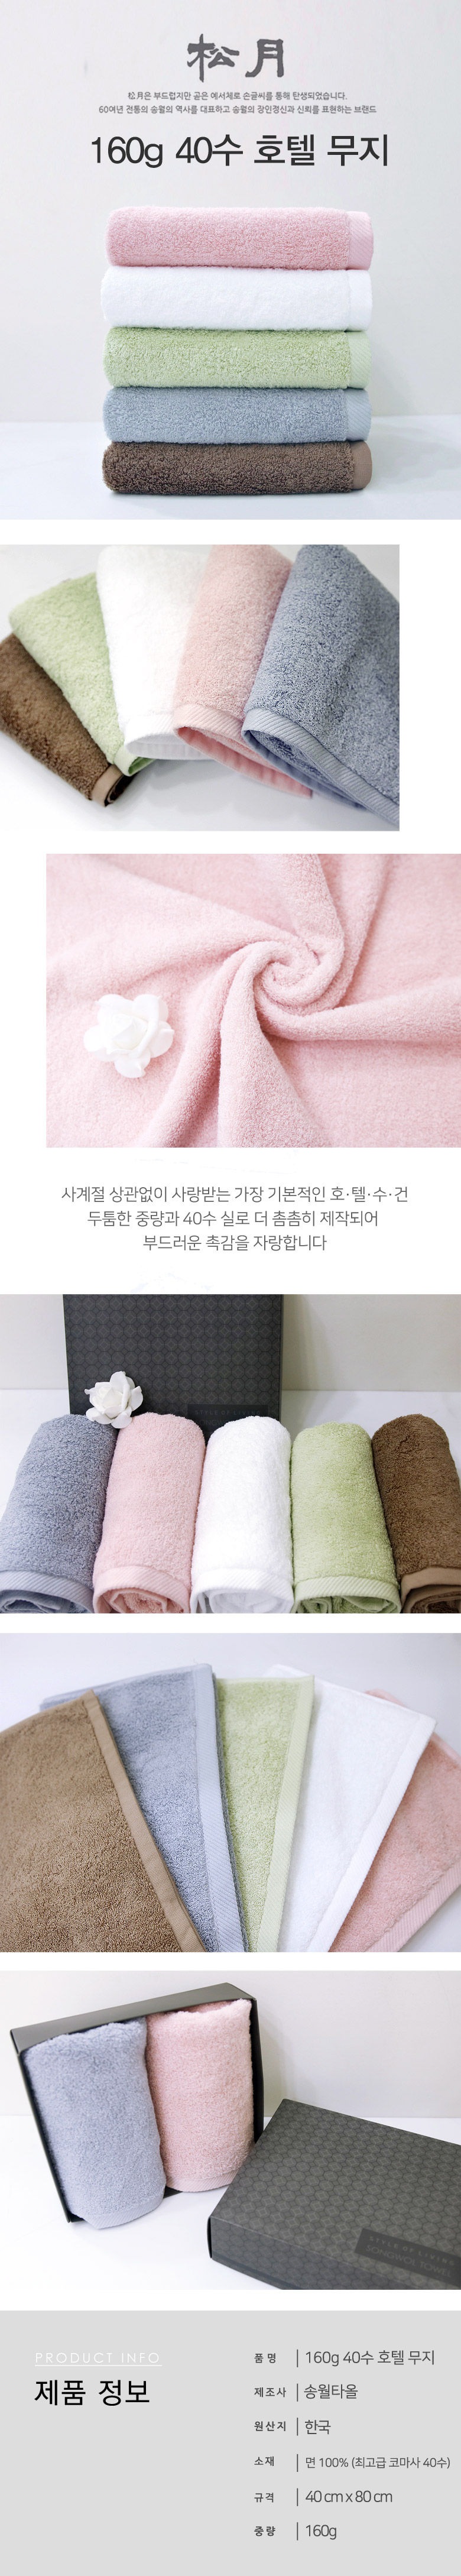 [ songwol ] Songwol Towel 高級酒店毛巾40支紗 170g (40*80cm)